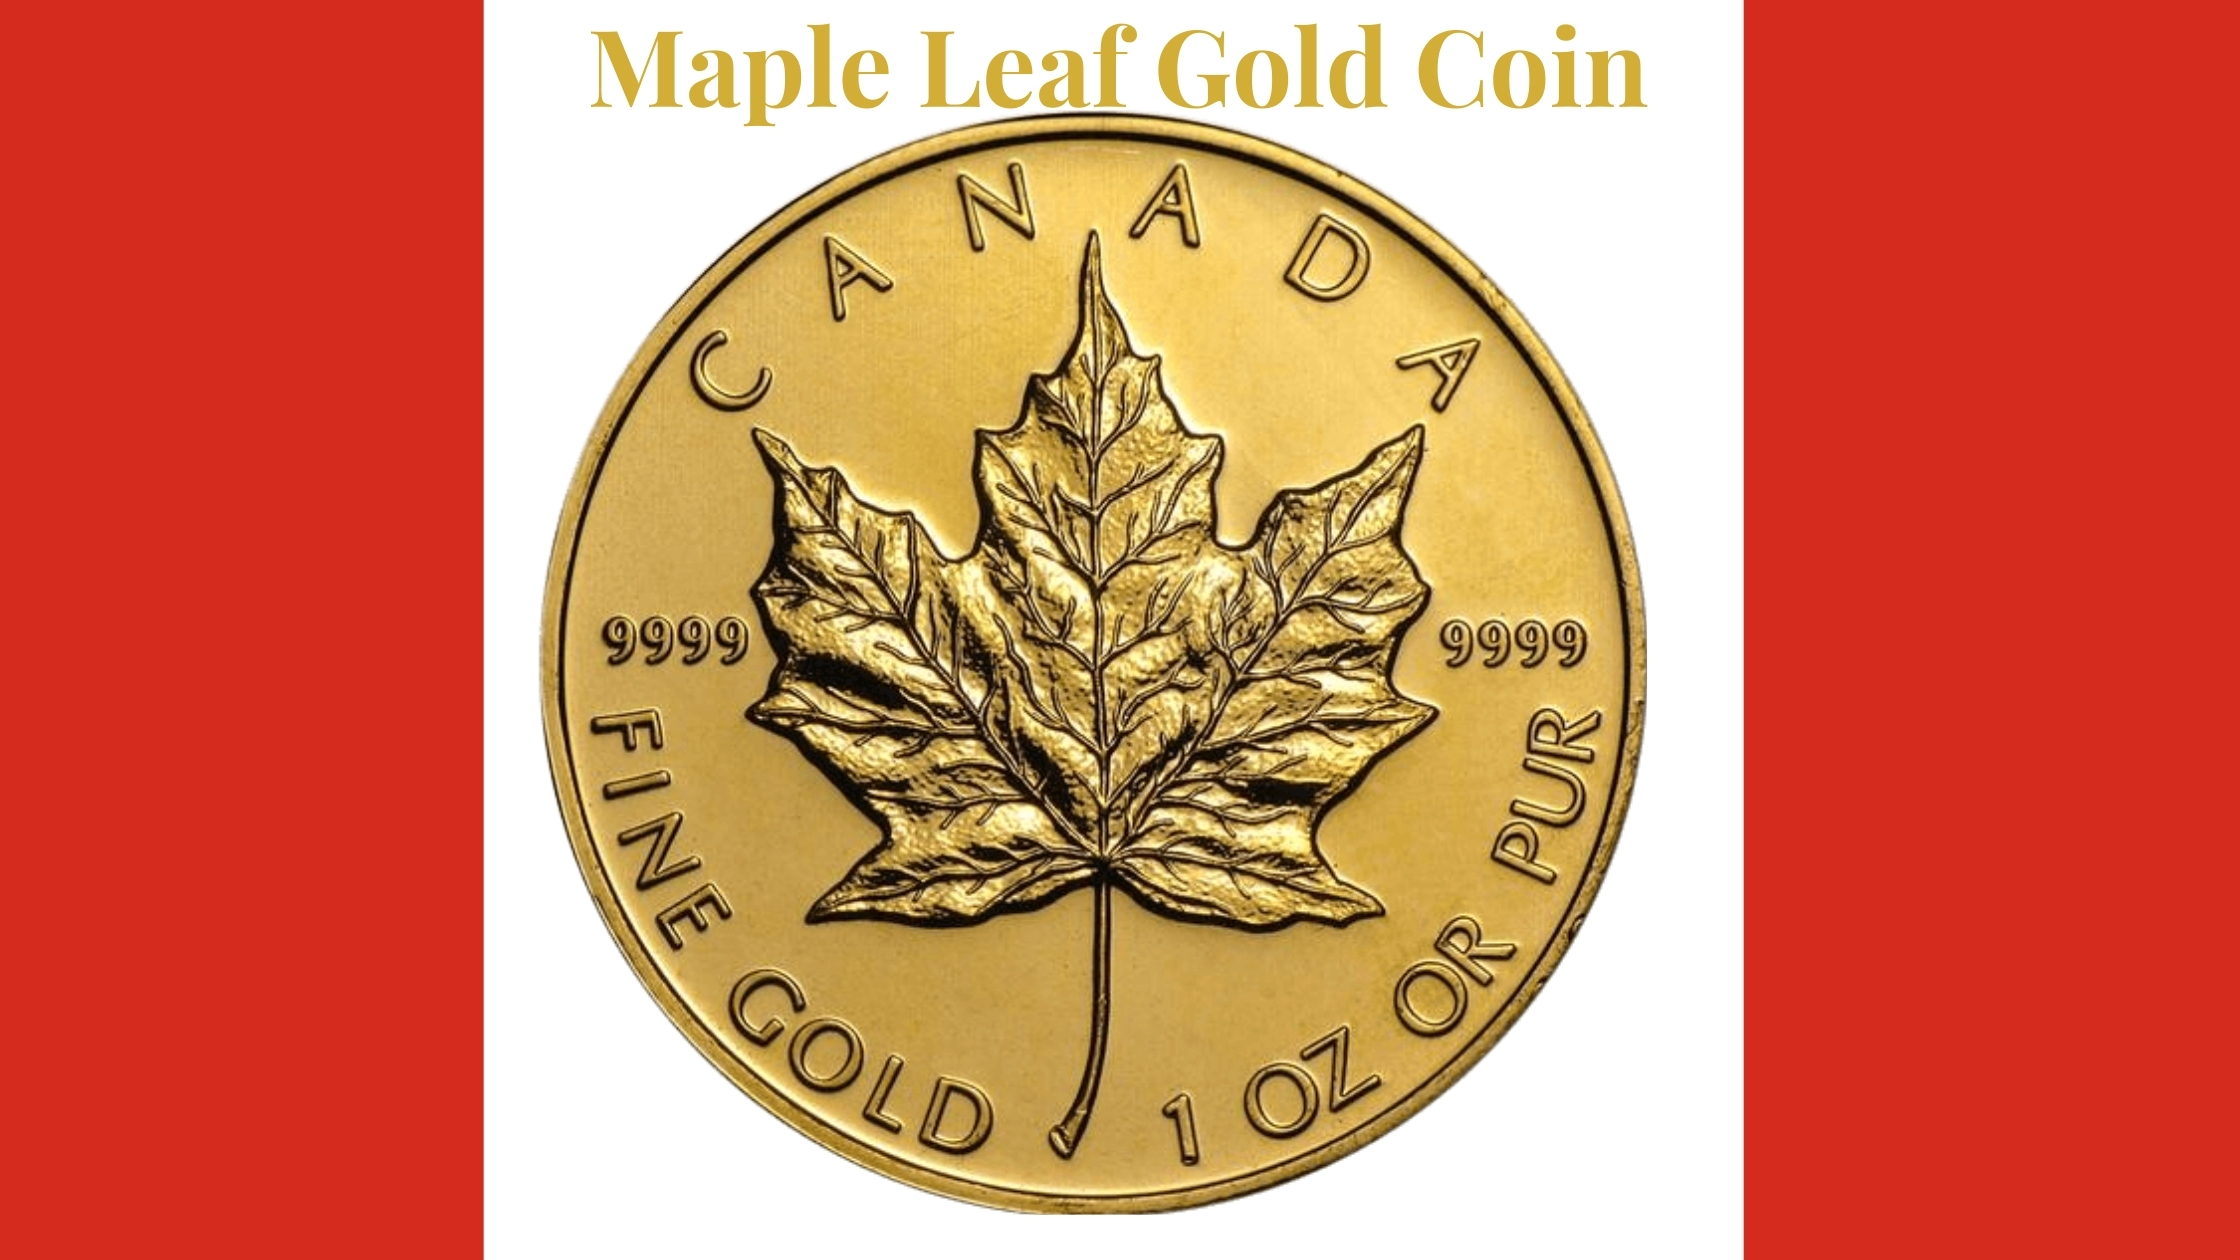 Maple Leaf gold coin on Canadian flag